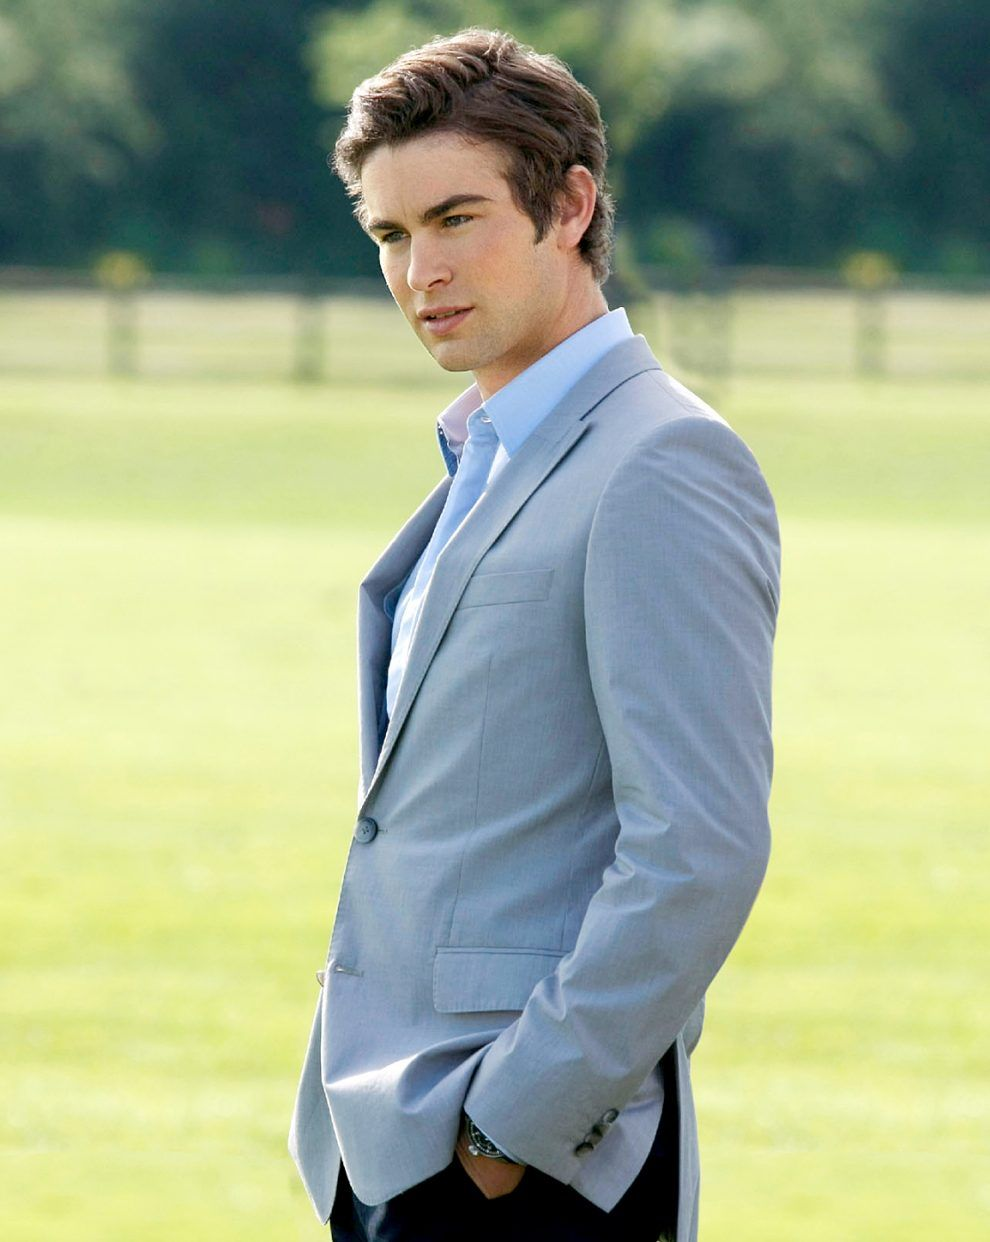 Gossip Girl star Chace Crawford hints at cameo in show's reboot